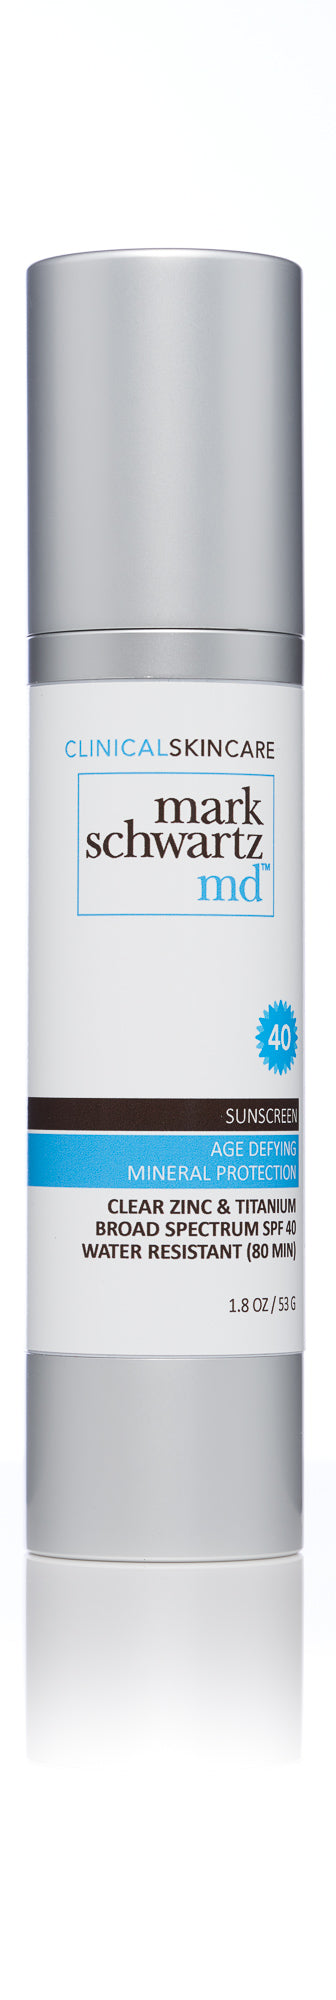 Age Defying Mineral Protection SPF 40 Facial Sunscreen